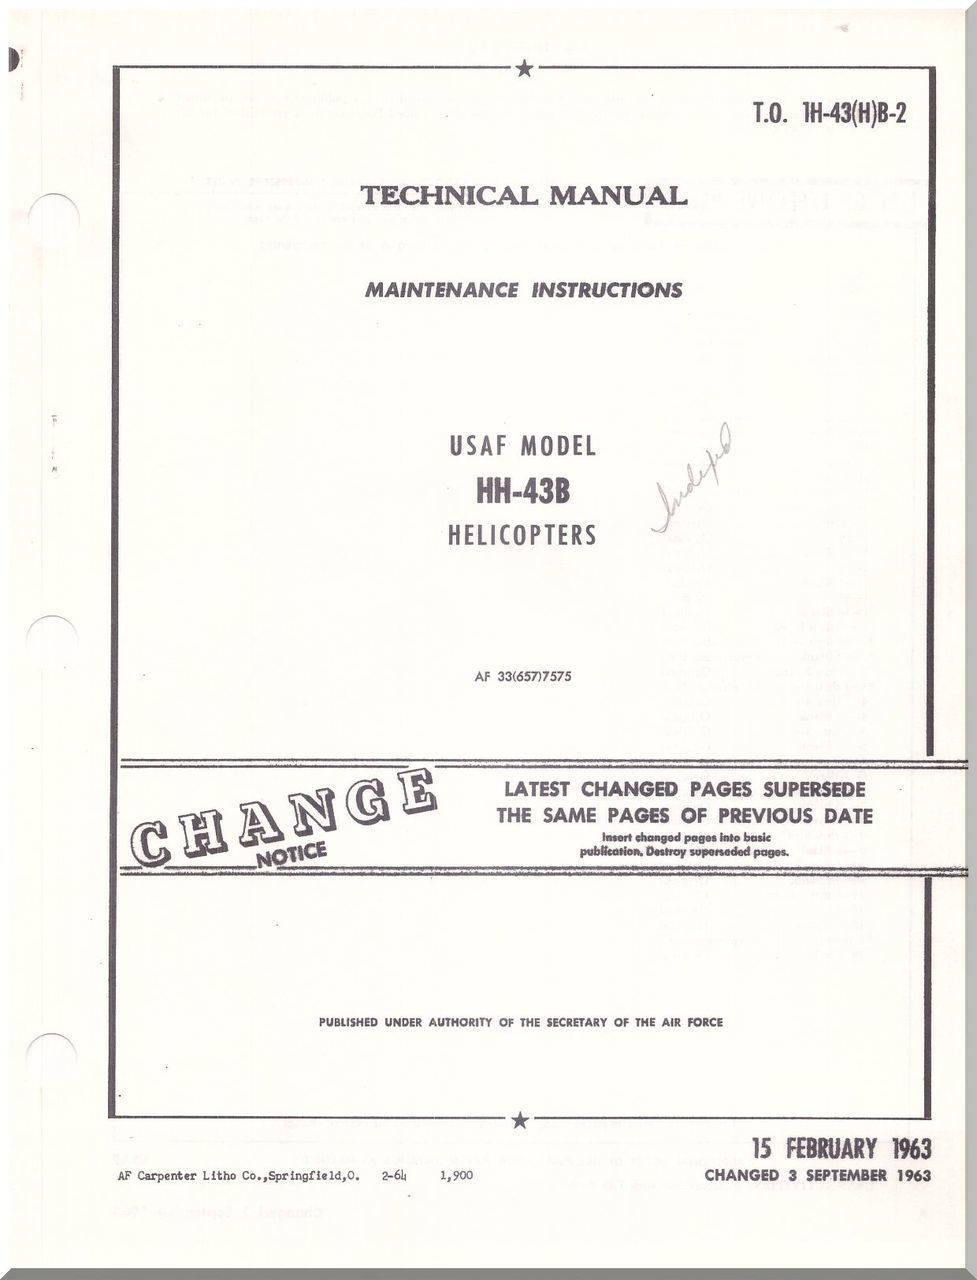 KAMAN HH-43 B Helicopter Maintenance Instructions Manual - T.O. 1H-43(H)B-3  -1963 - Aircraft Reports - Aircraft Manuals - Aircraft Helicopter Engines  ...